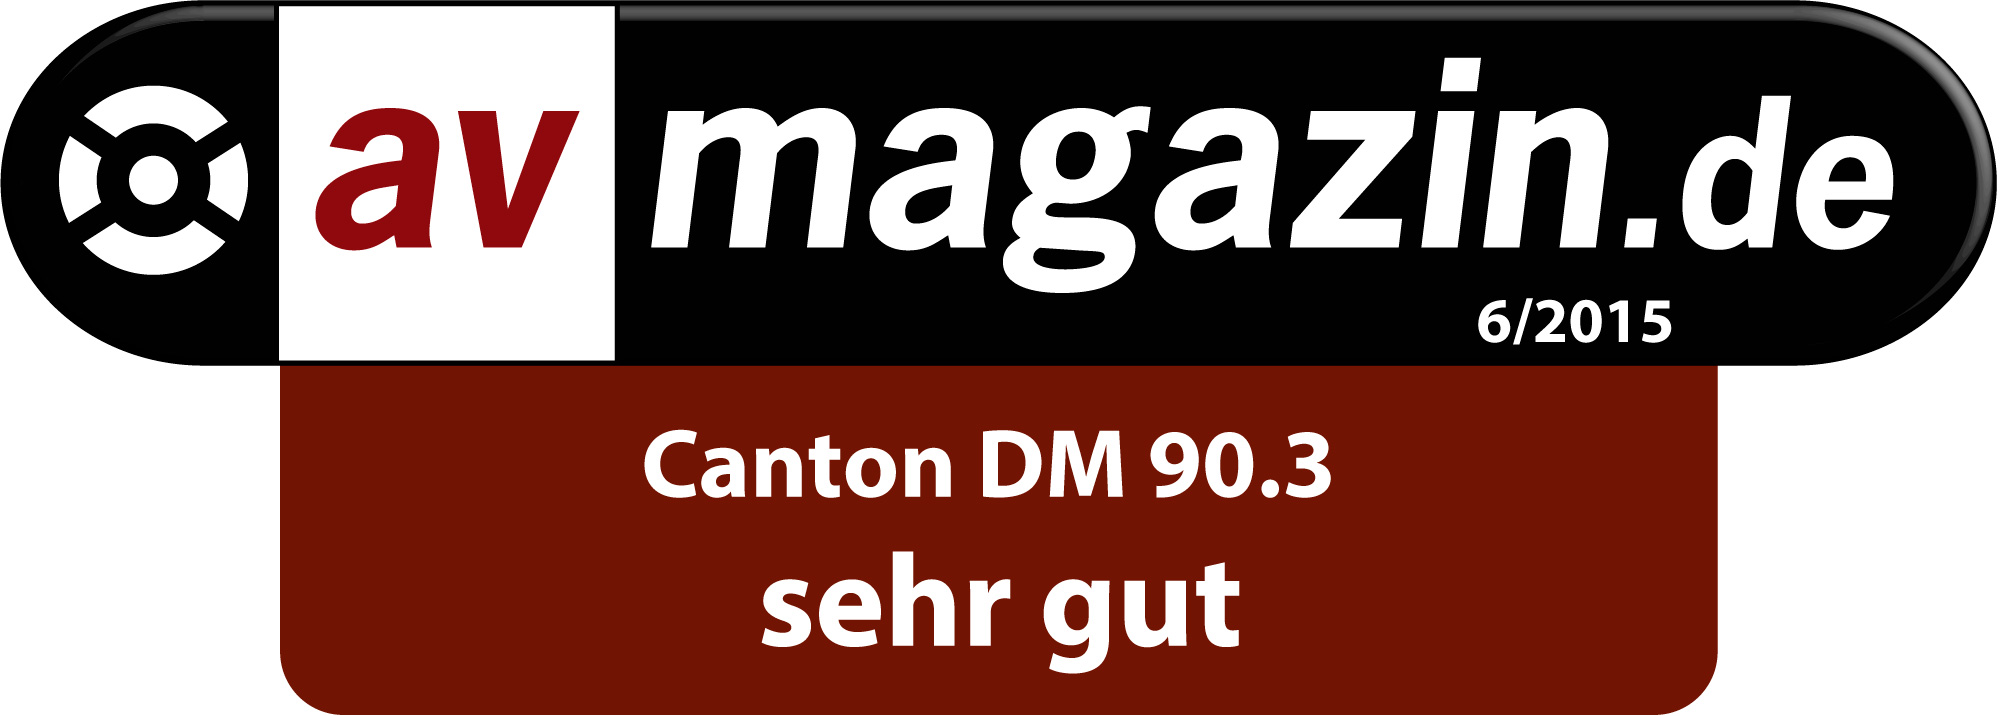 DM90-3_av-magazin-de_Testaward